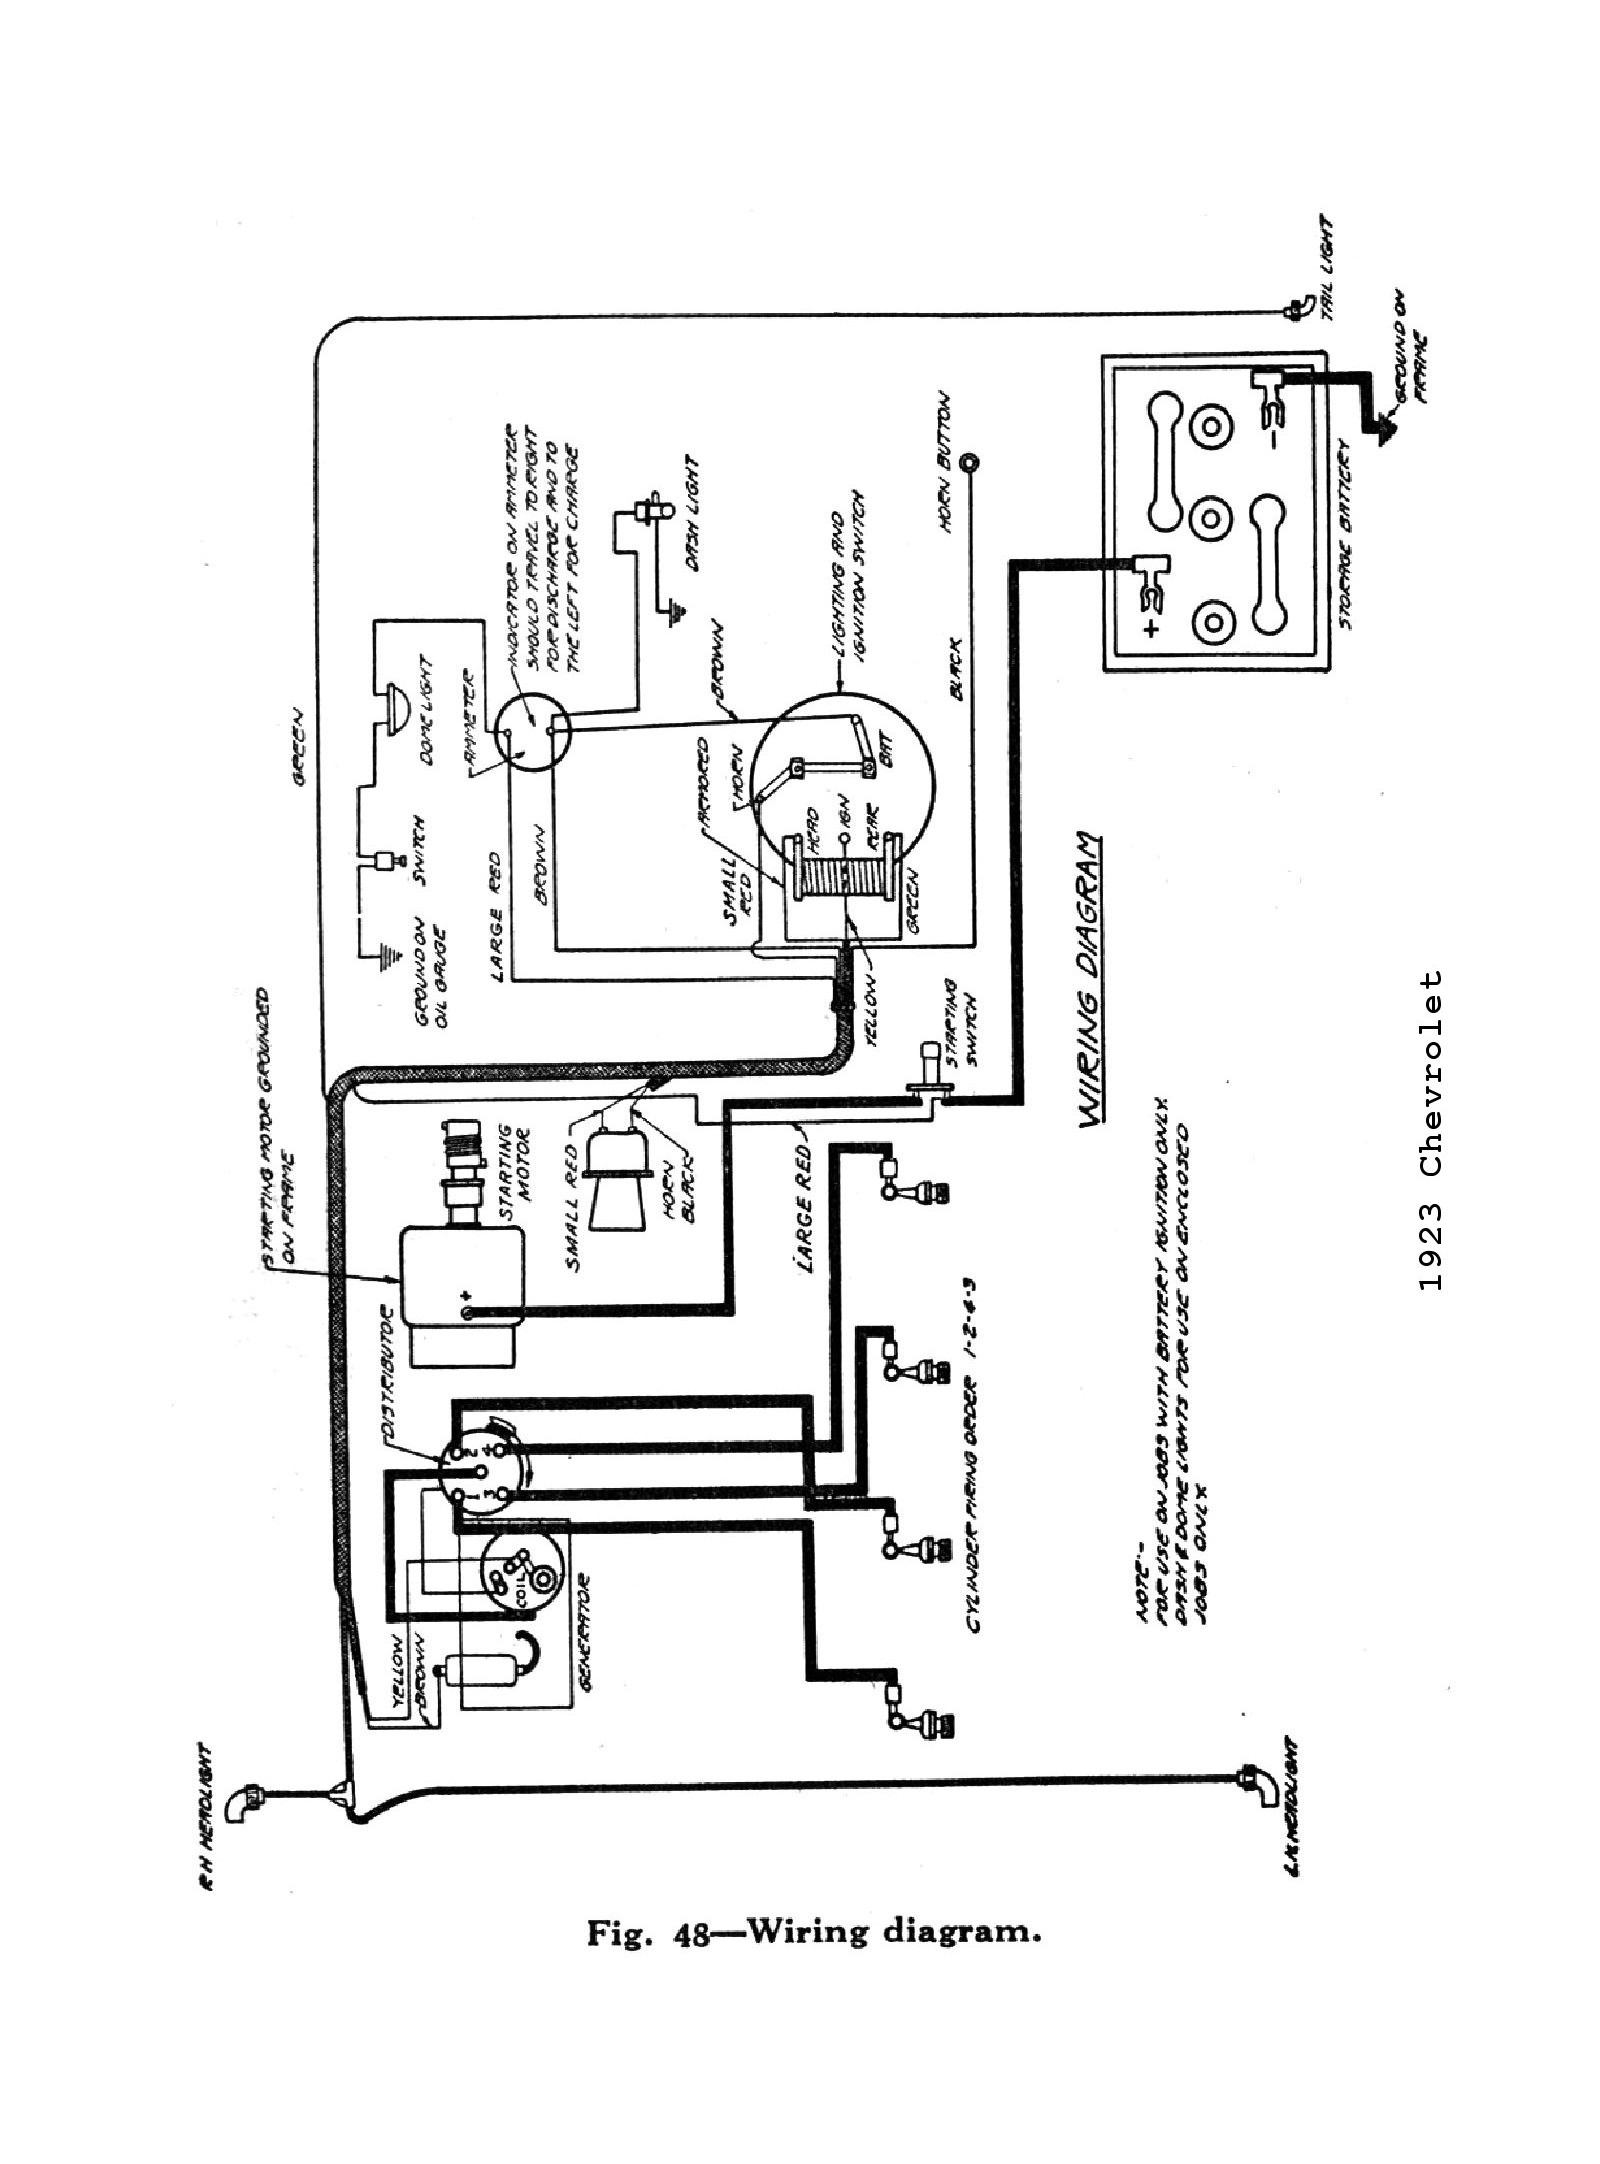 Wiring on 1957 cadillac wiring diagram